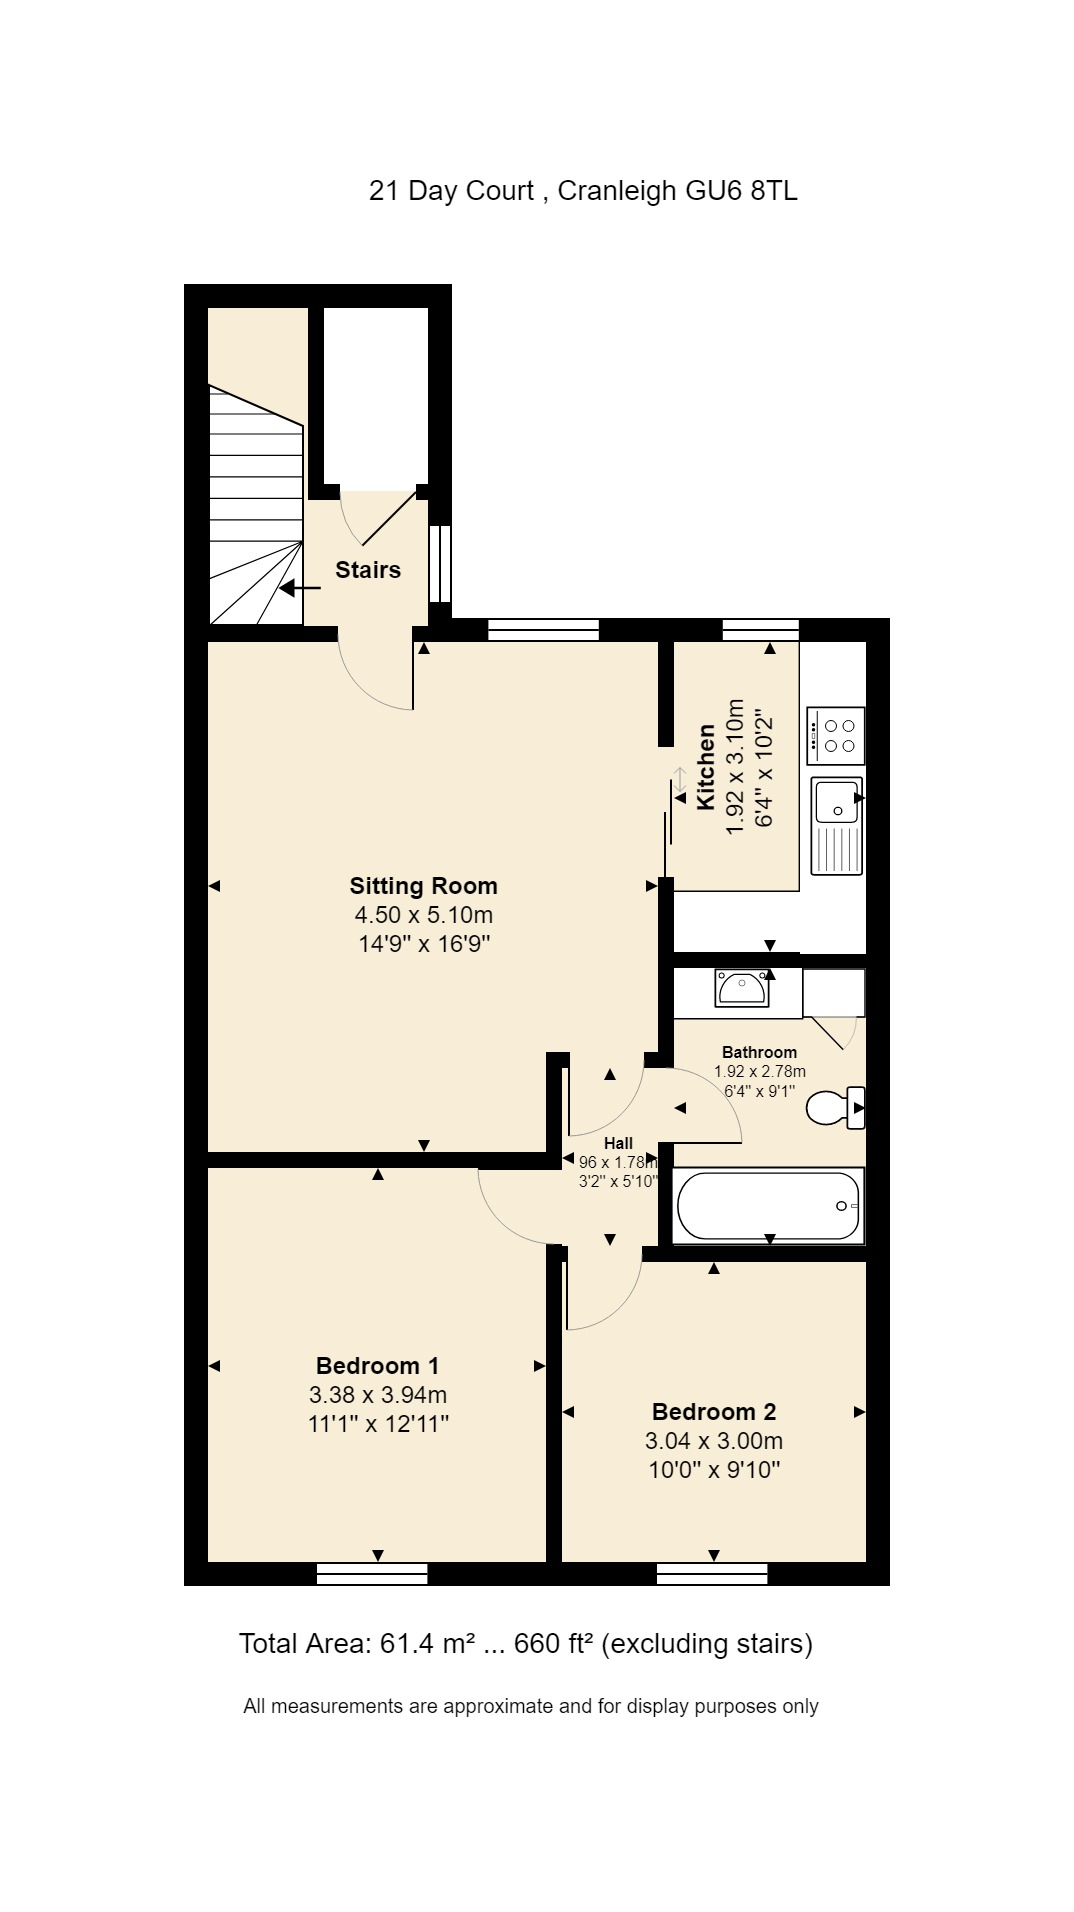 21 Day Court Floorplan